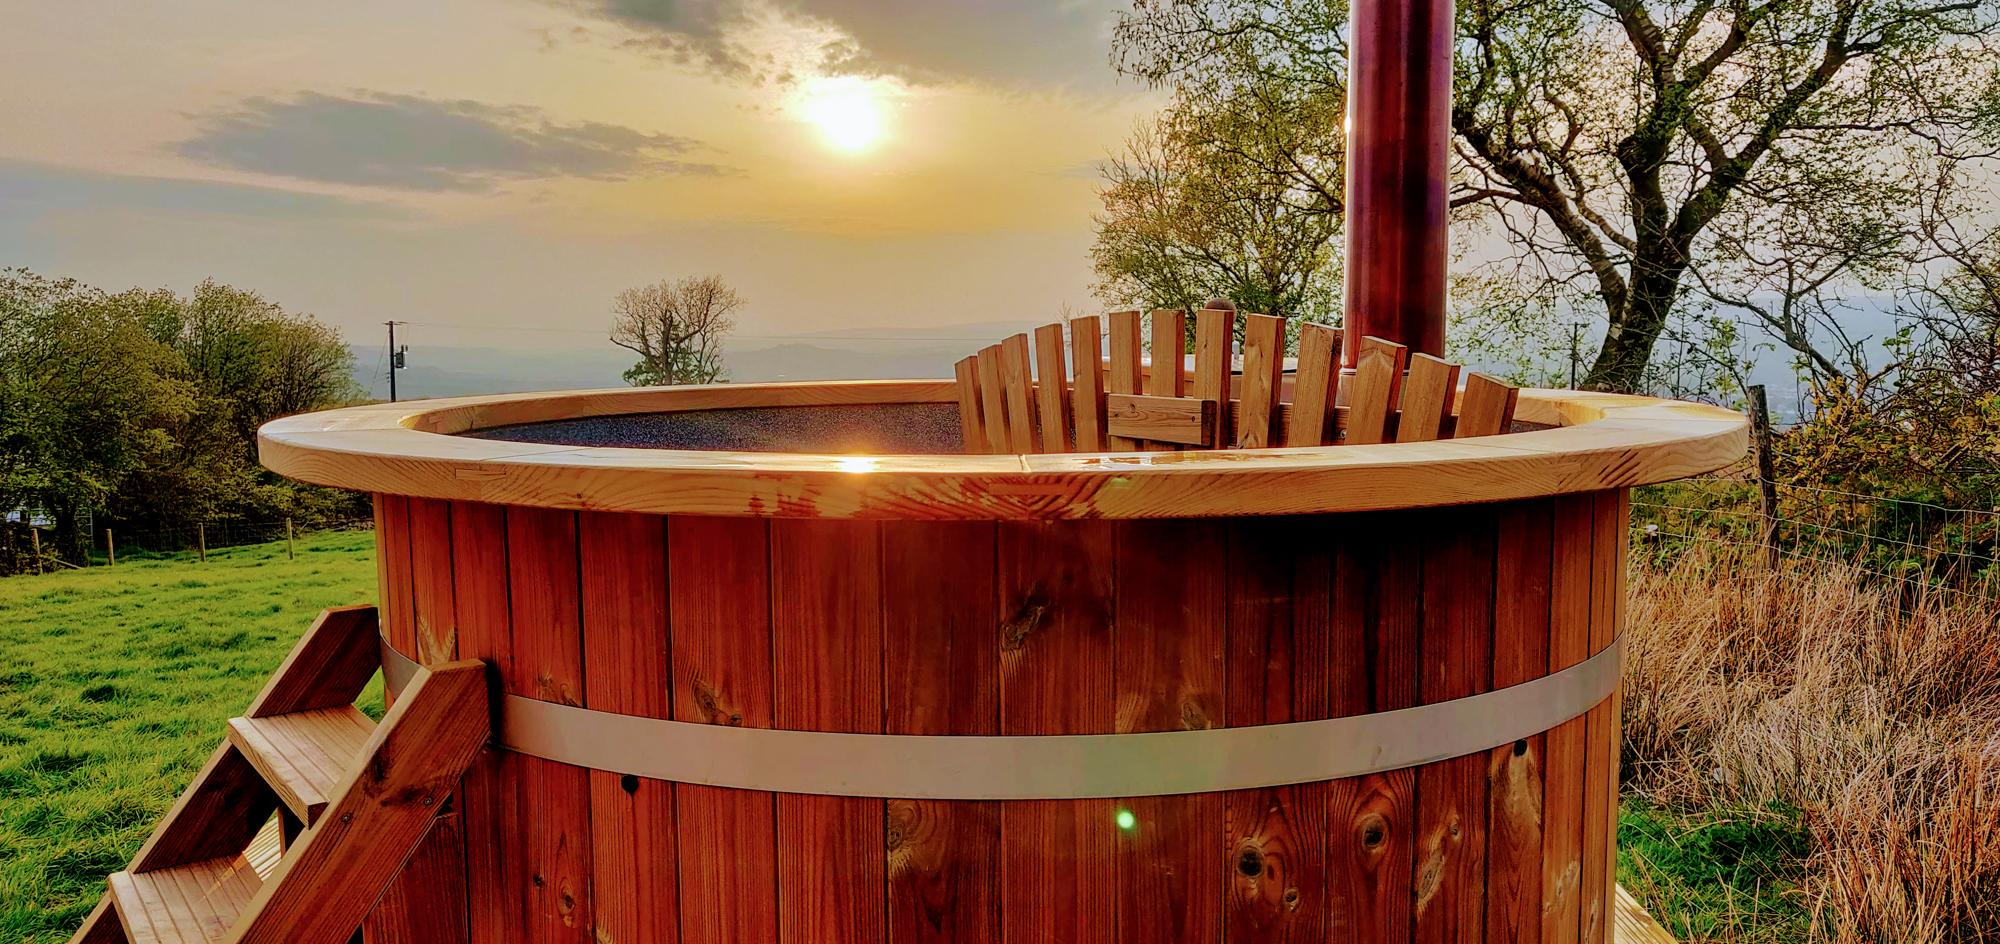 Glamping sites with hot tubs in the Brecon Beacons National Park